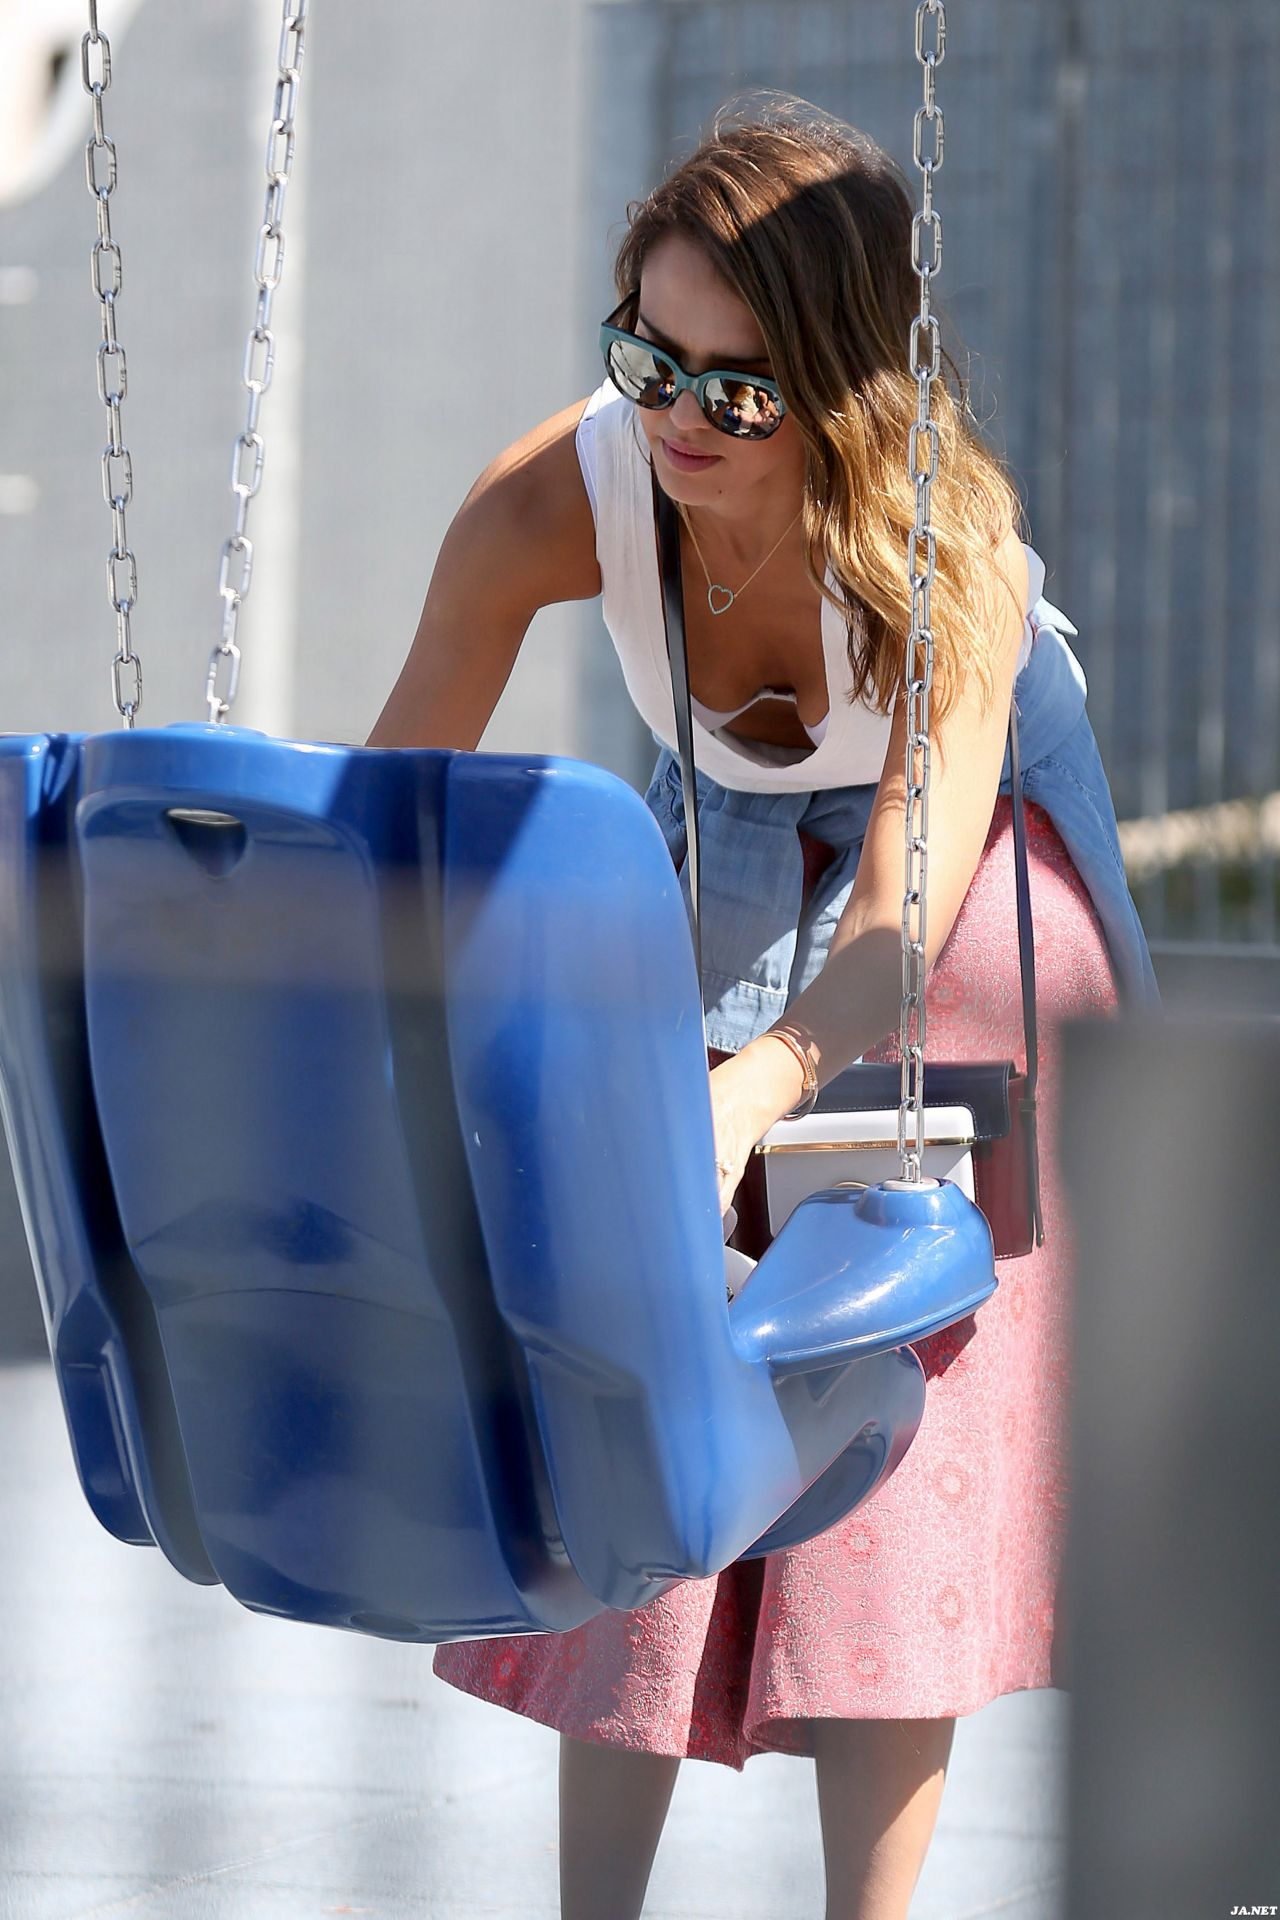 Jessica Alba at The Park in Los Angeles - Sept. 2014